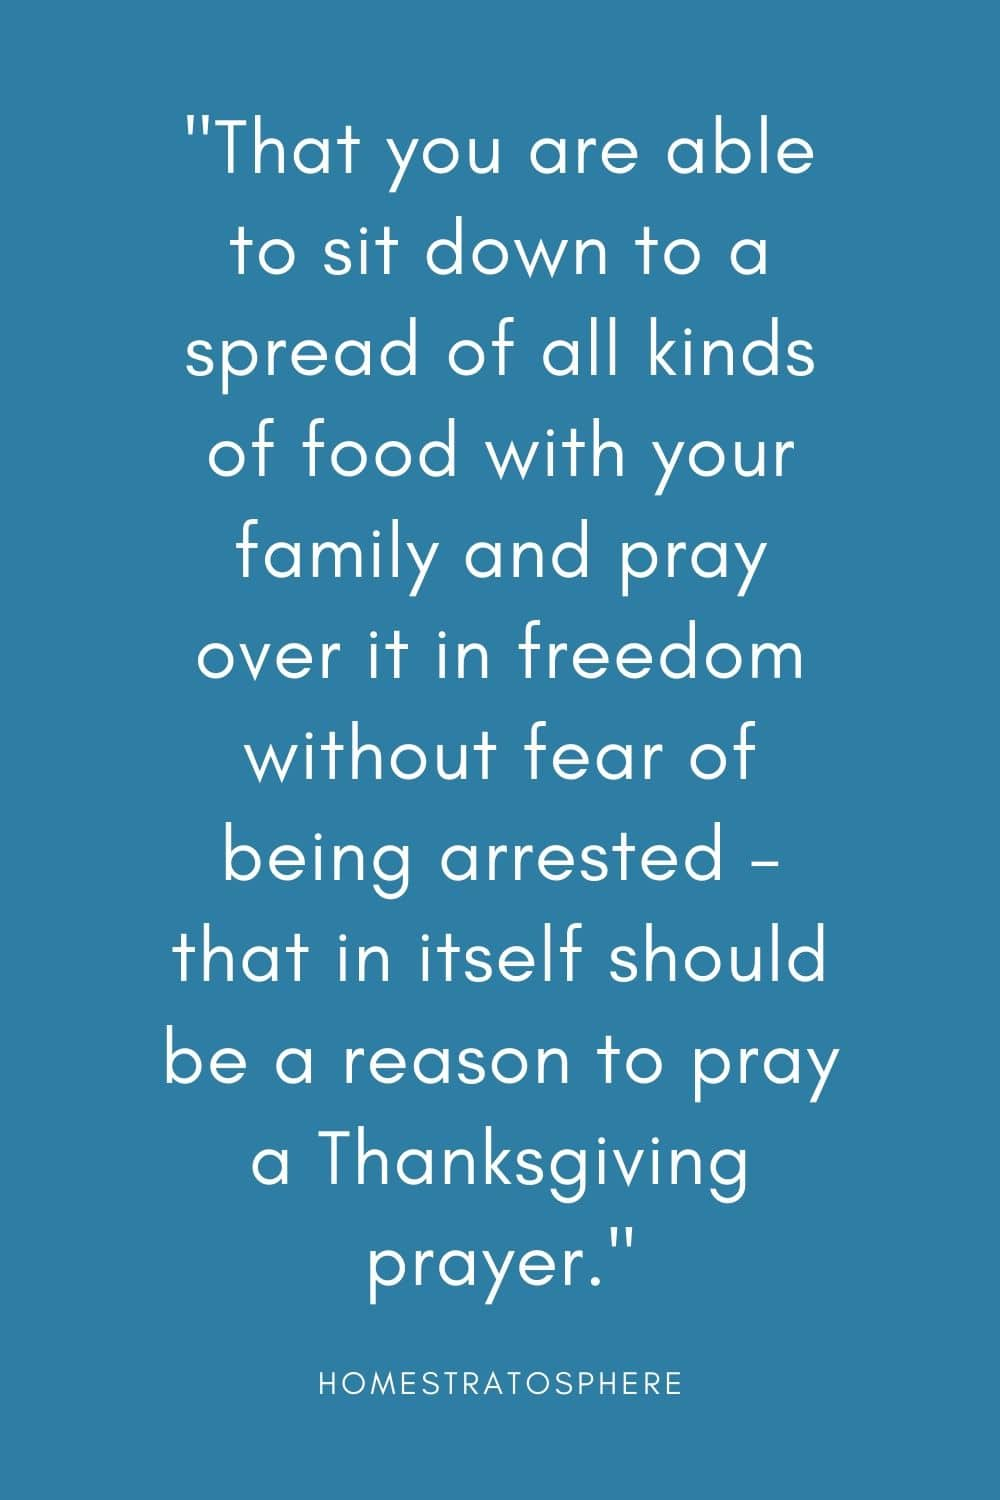 """That you are able to sit down to a spread of all kinds of food with your family and pray over it in freedom without fear of being arrested – that in itself should be a reason to pray a Thanksgiving prayer."""